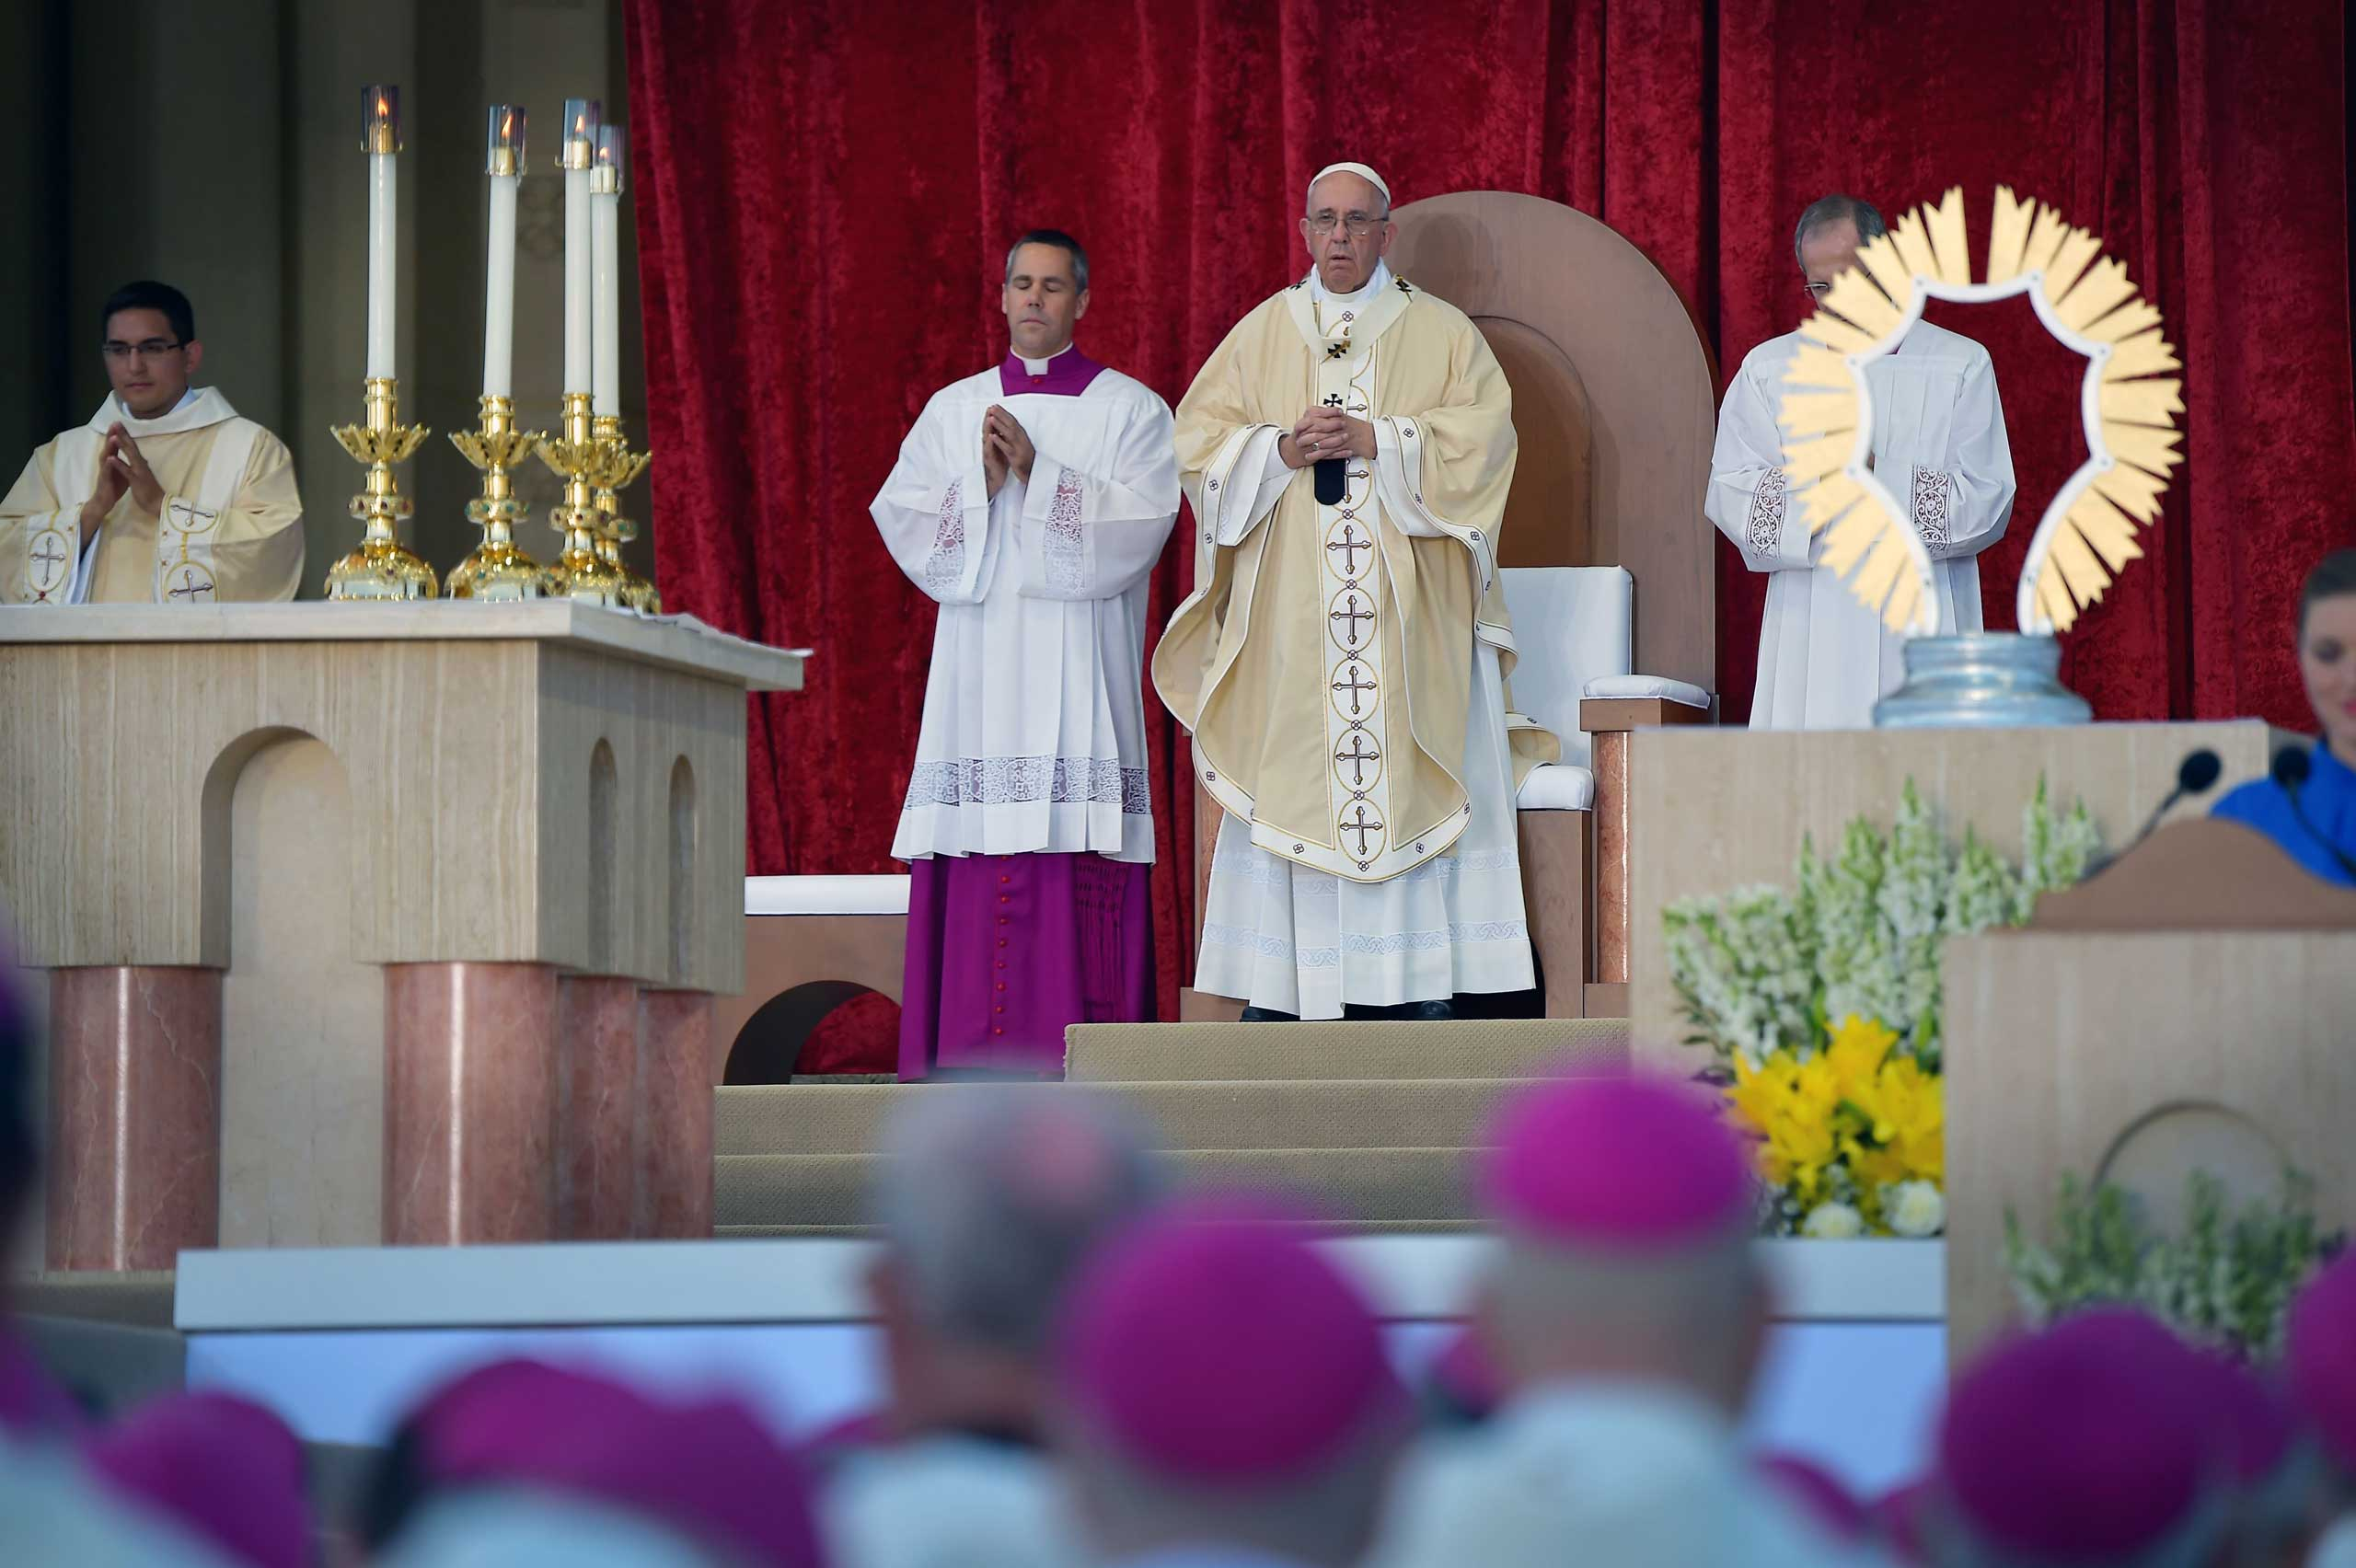 Pope Francis performs Mass at the Basilica of the National Shrine of the Immaculate Conception in Washington, on Sept. 23, 2015.